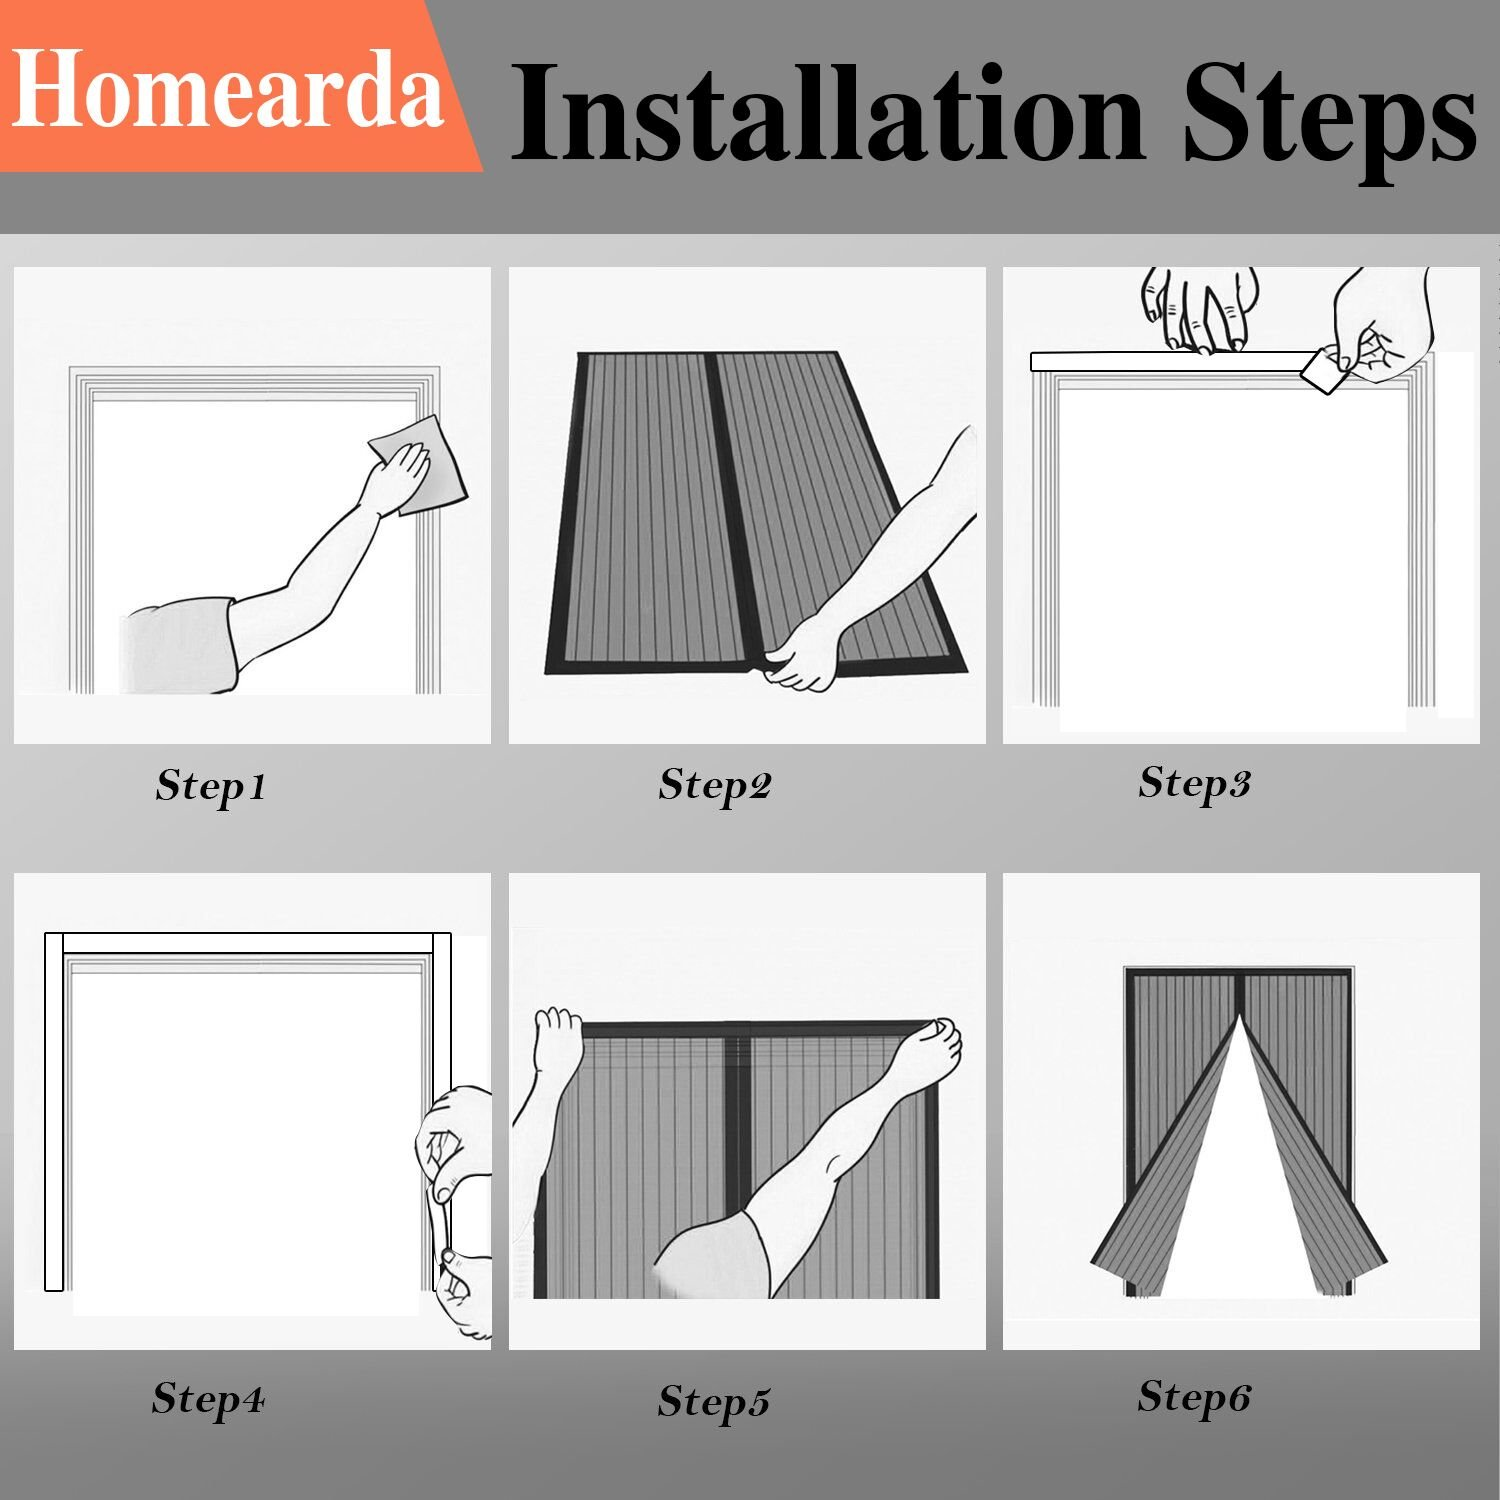 Homearda Fiberglass Magnetic Screen Door-New 2018 Design Upgrade Magnets-Durable Fiberglass Mesh Curtain with Weights in Bottom-Full Frame Magic Adhesive Tape. Fits Door up to 34x82